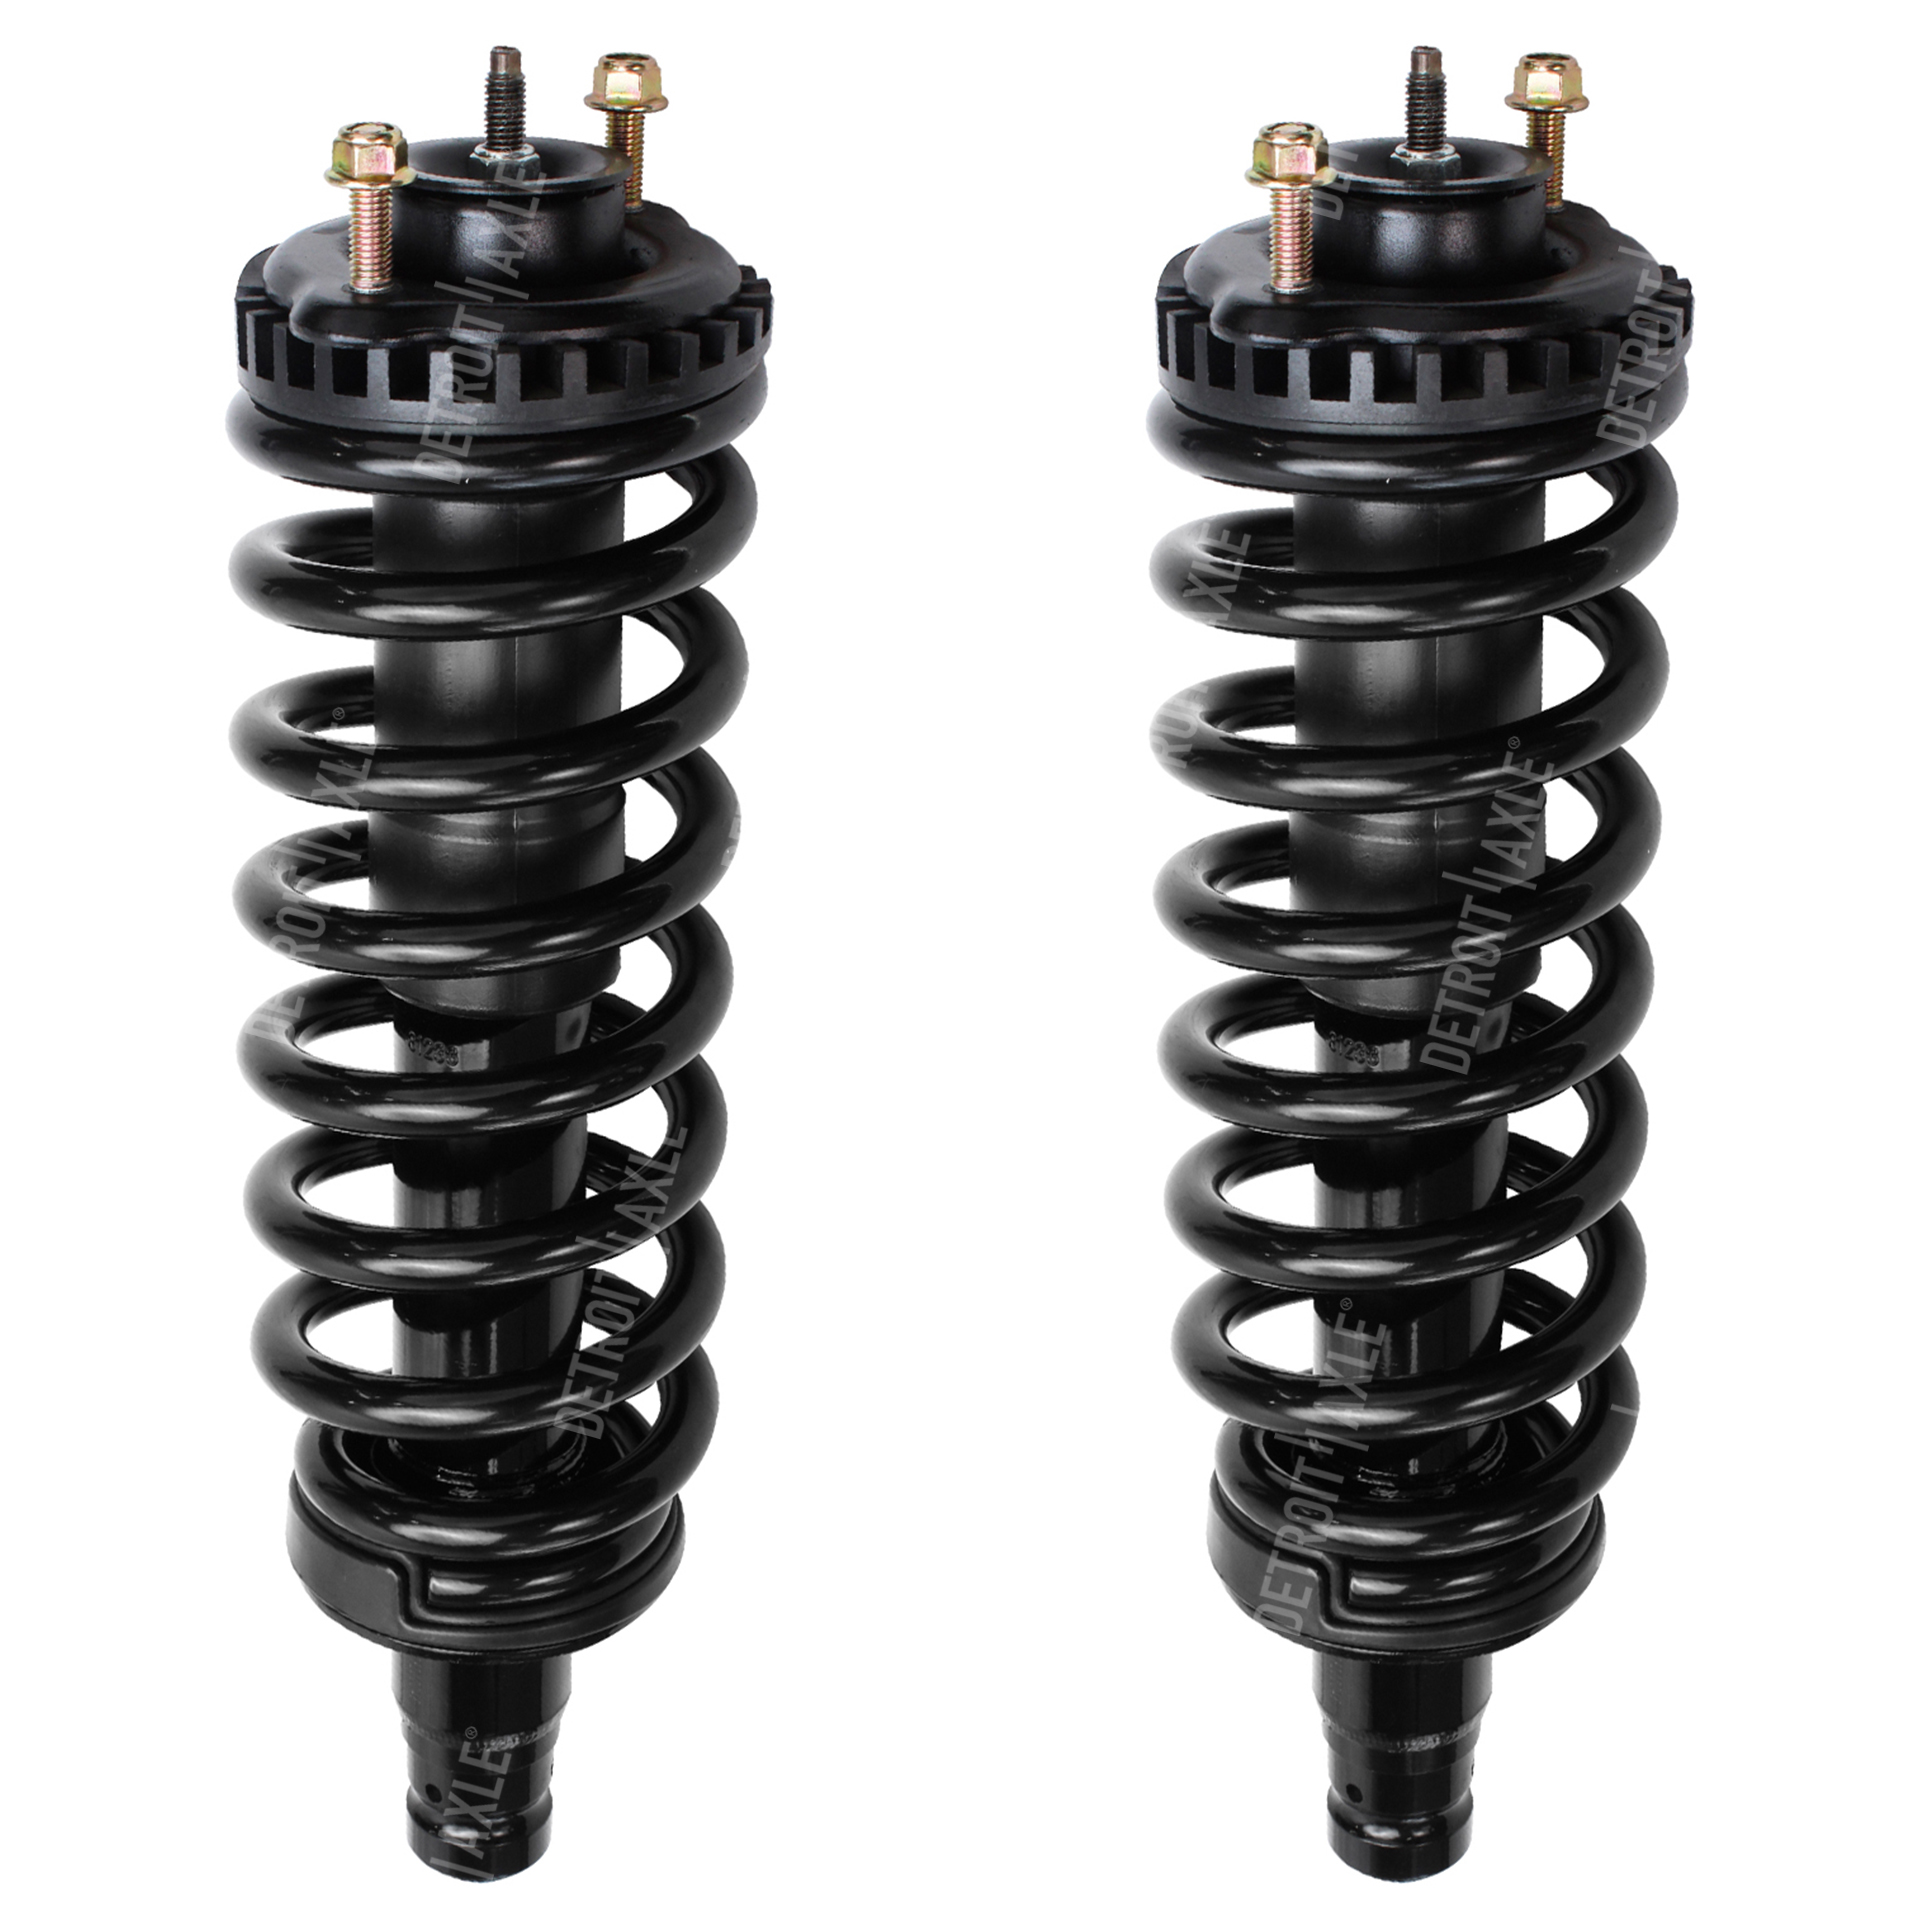 Pair (2) Front Left and Right Ready Strut w/Coil Spring Assemblies - for Chevrolet & GMC Envoy Trailblazer